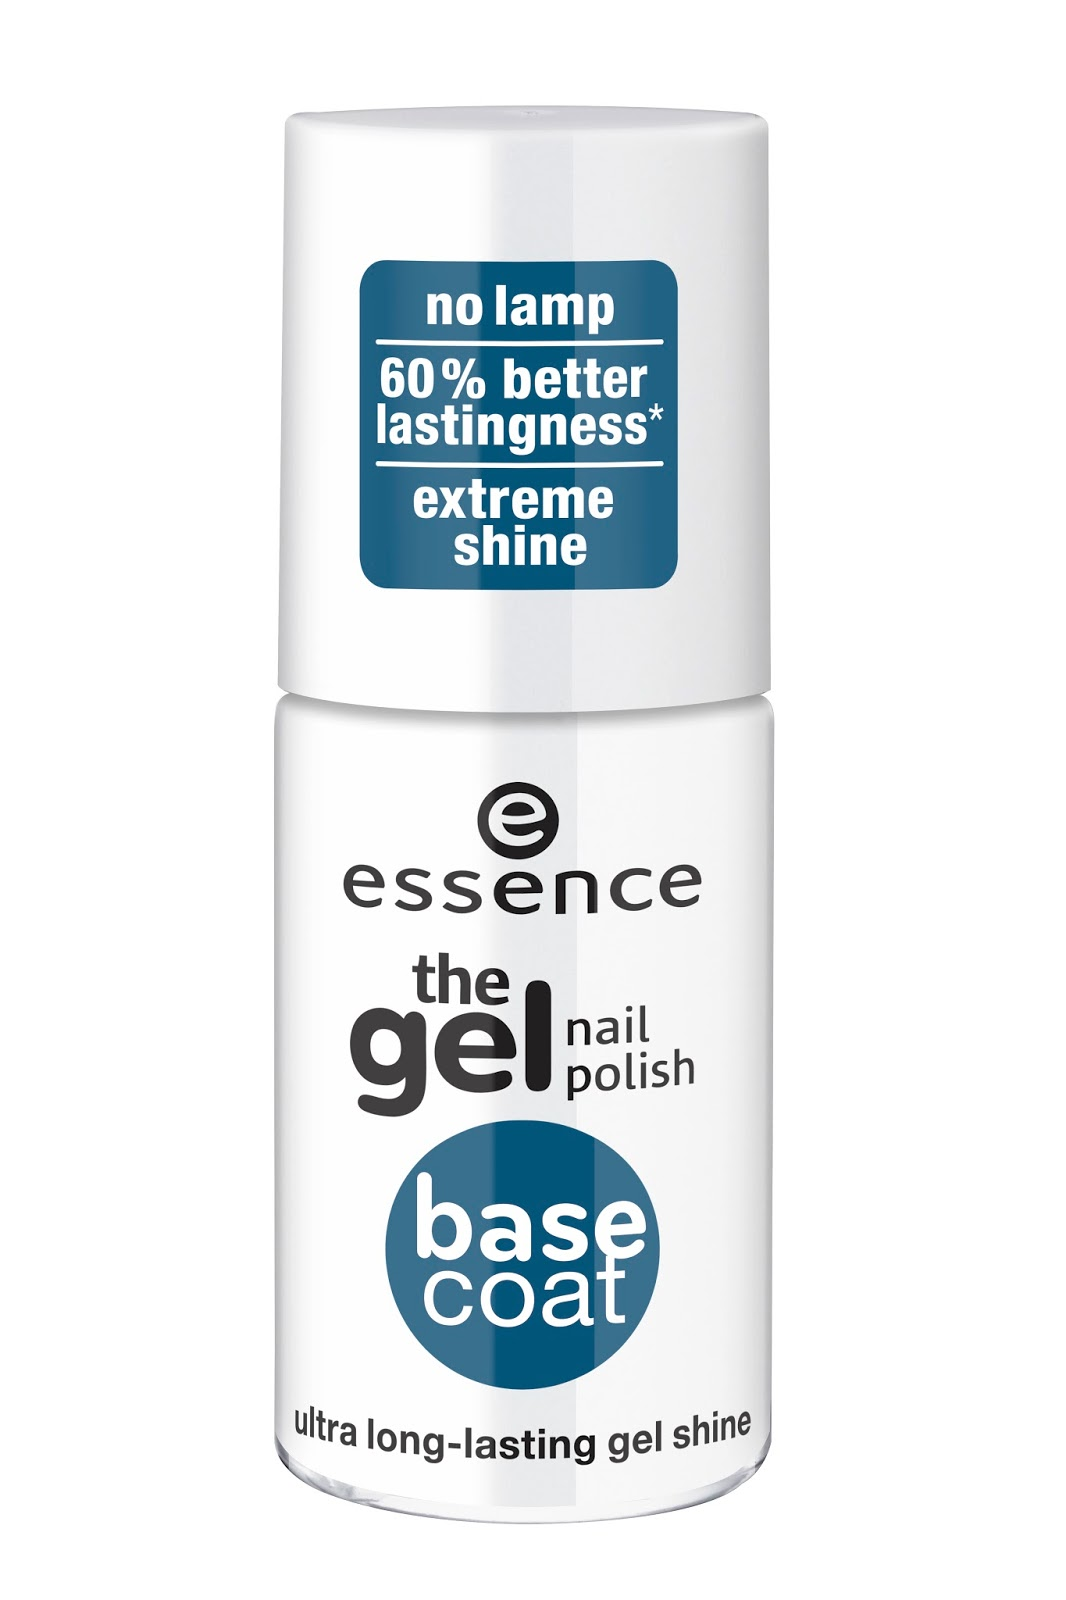 Essence the gel nail polish base coat & top coat